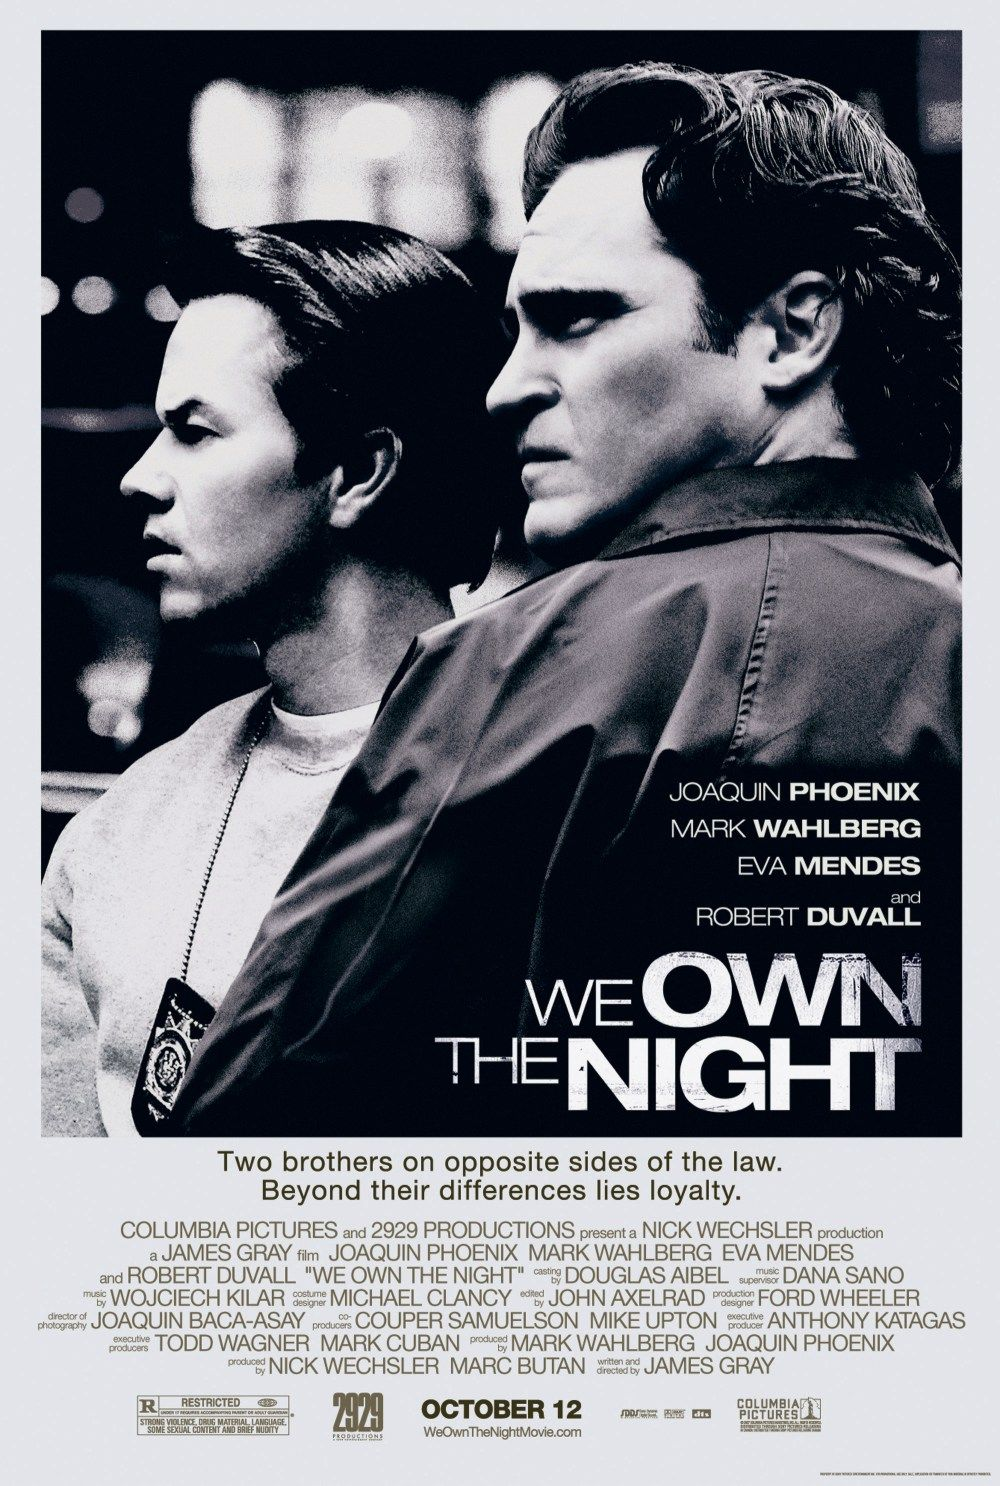 We Own The Night movie poster